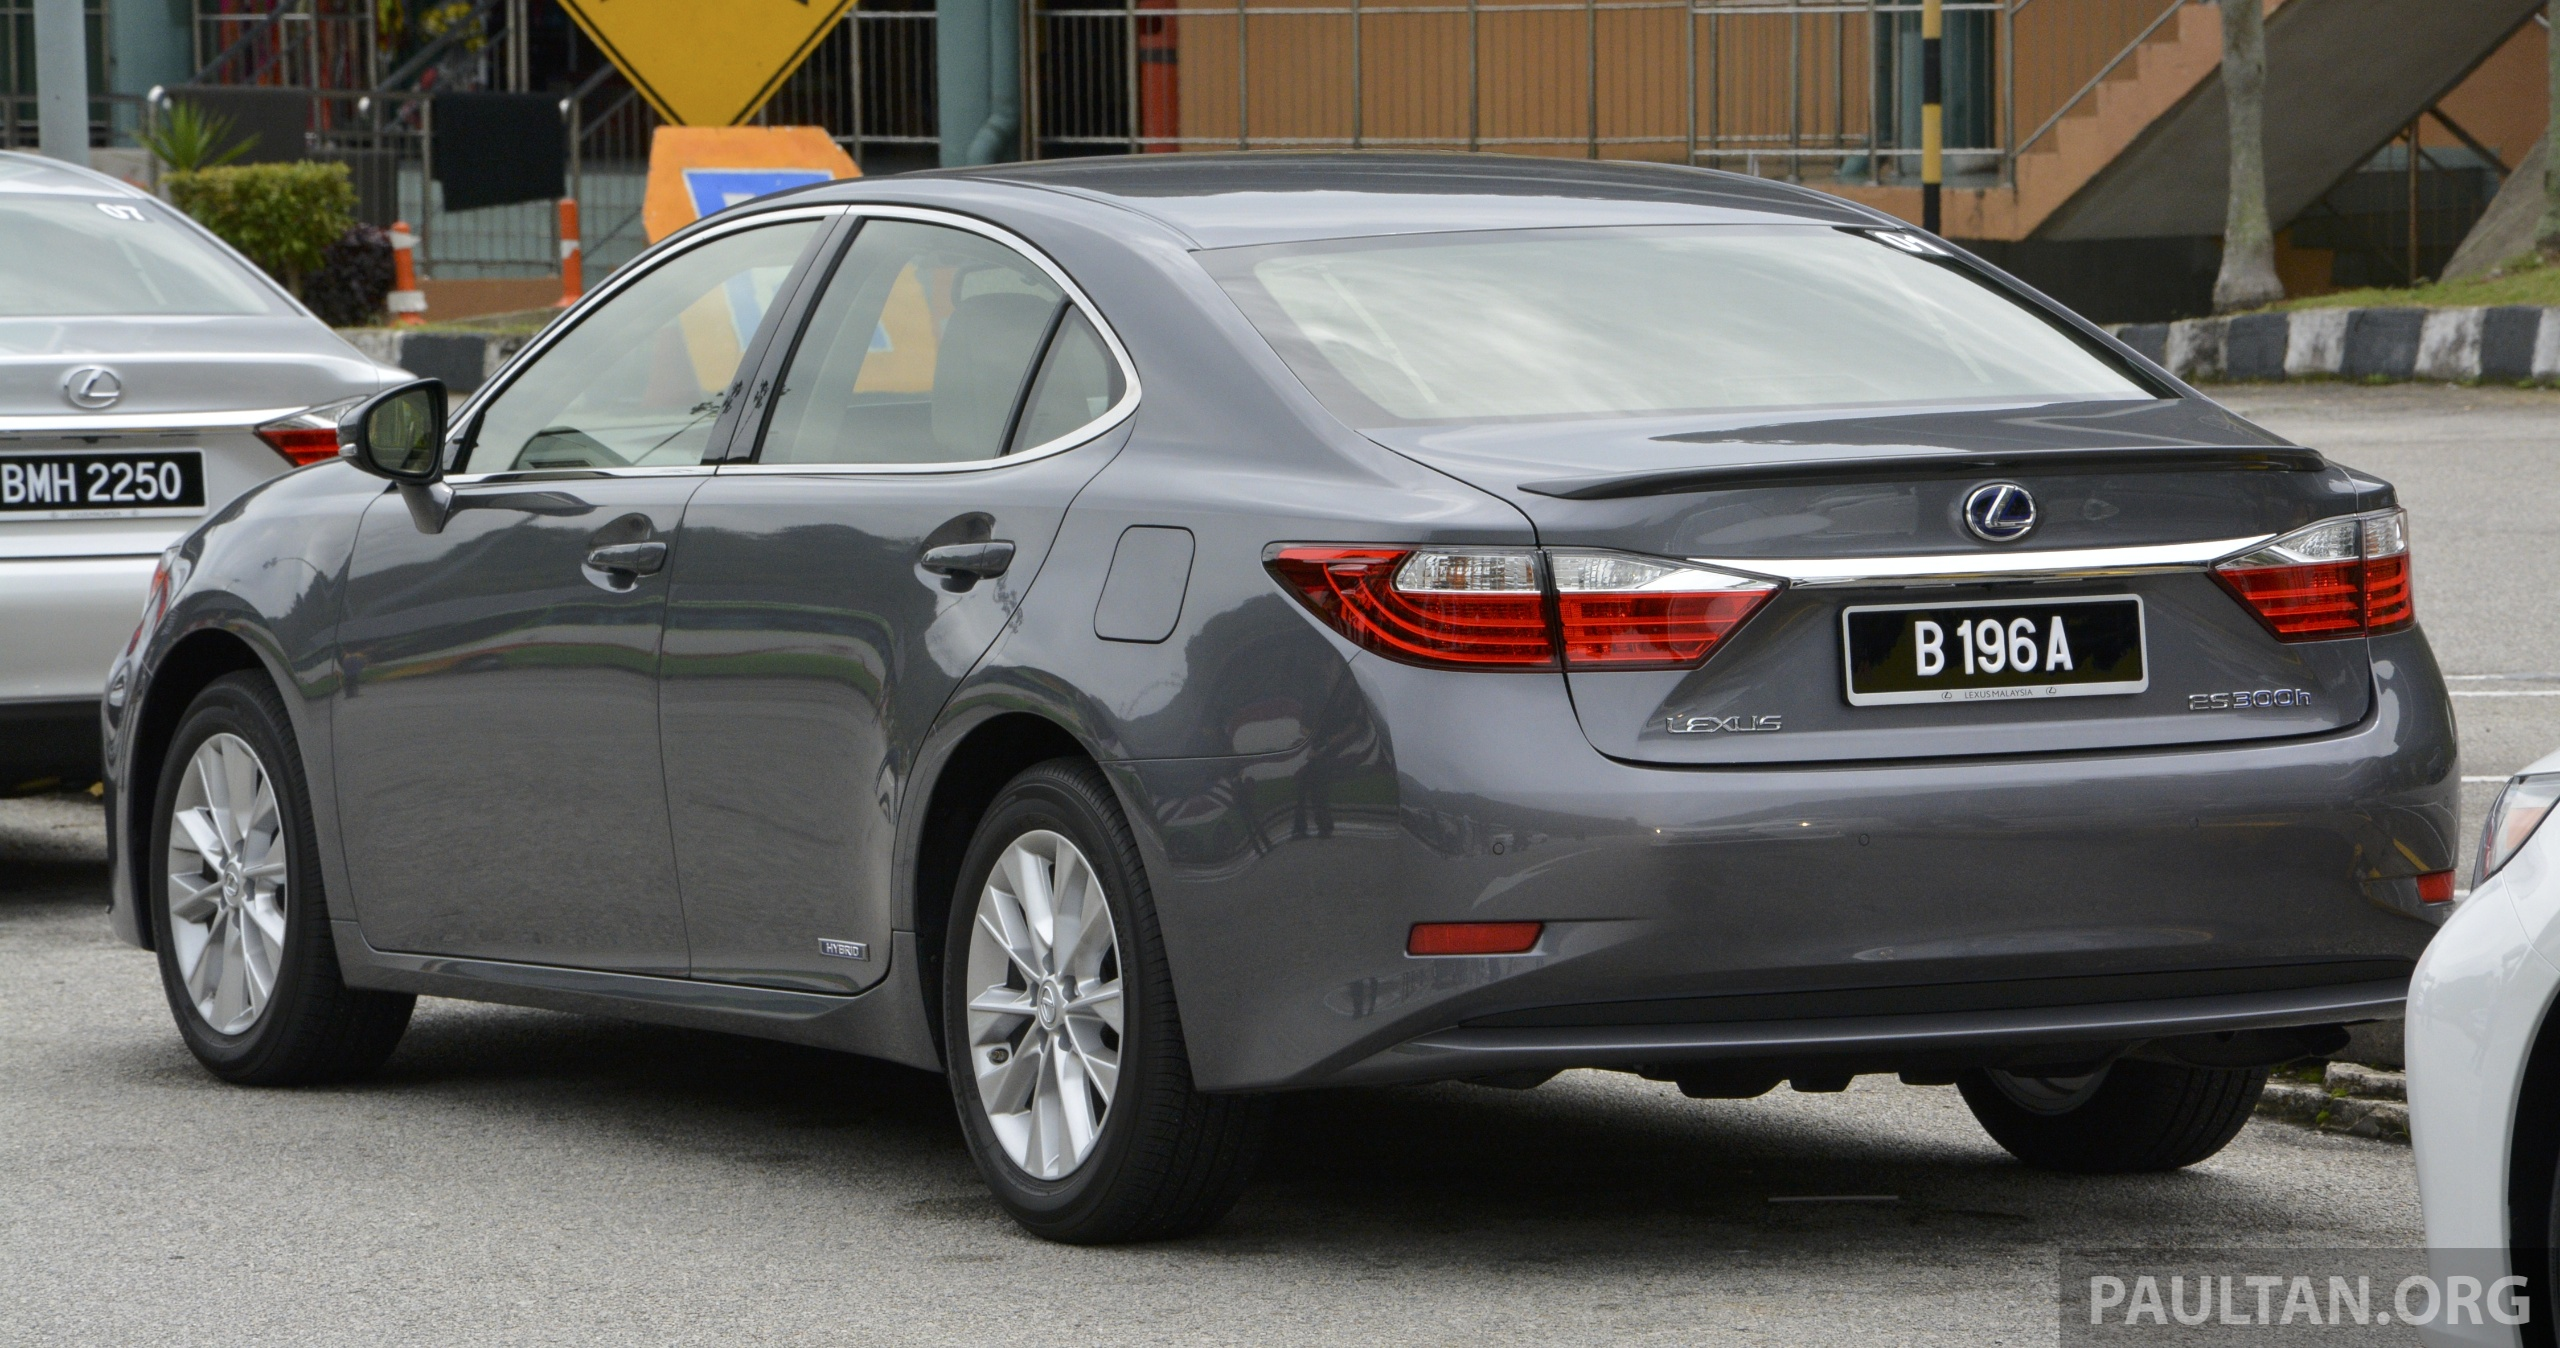 Driven 2013 Lexus Es 250 And 300h Sampled Image 219424